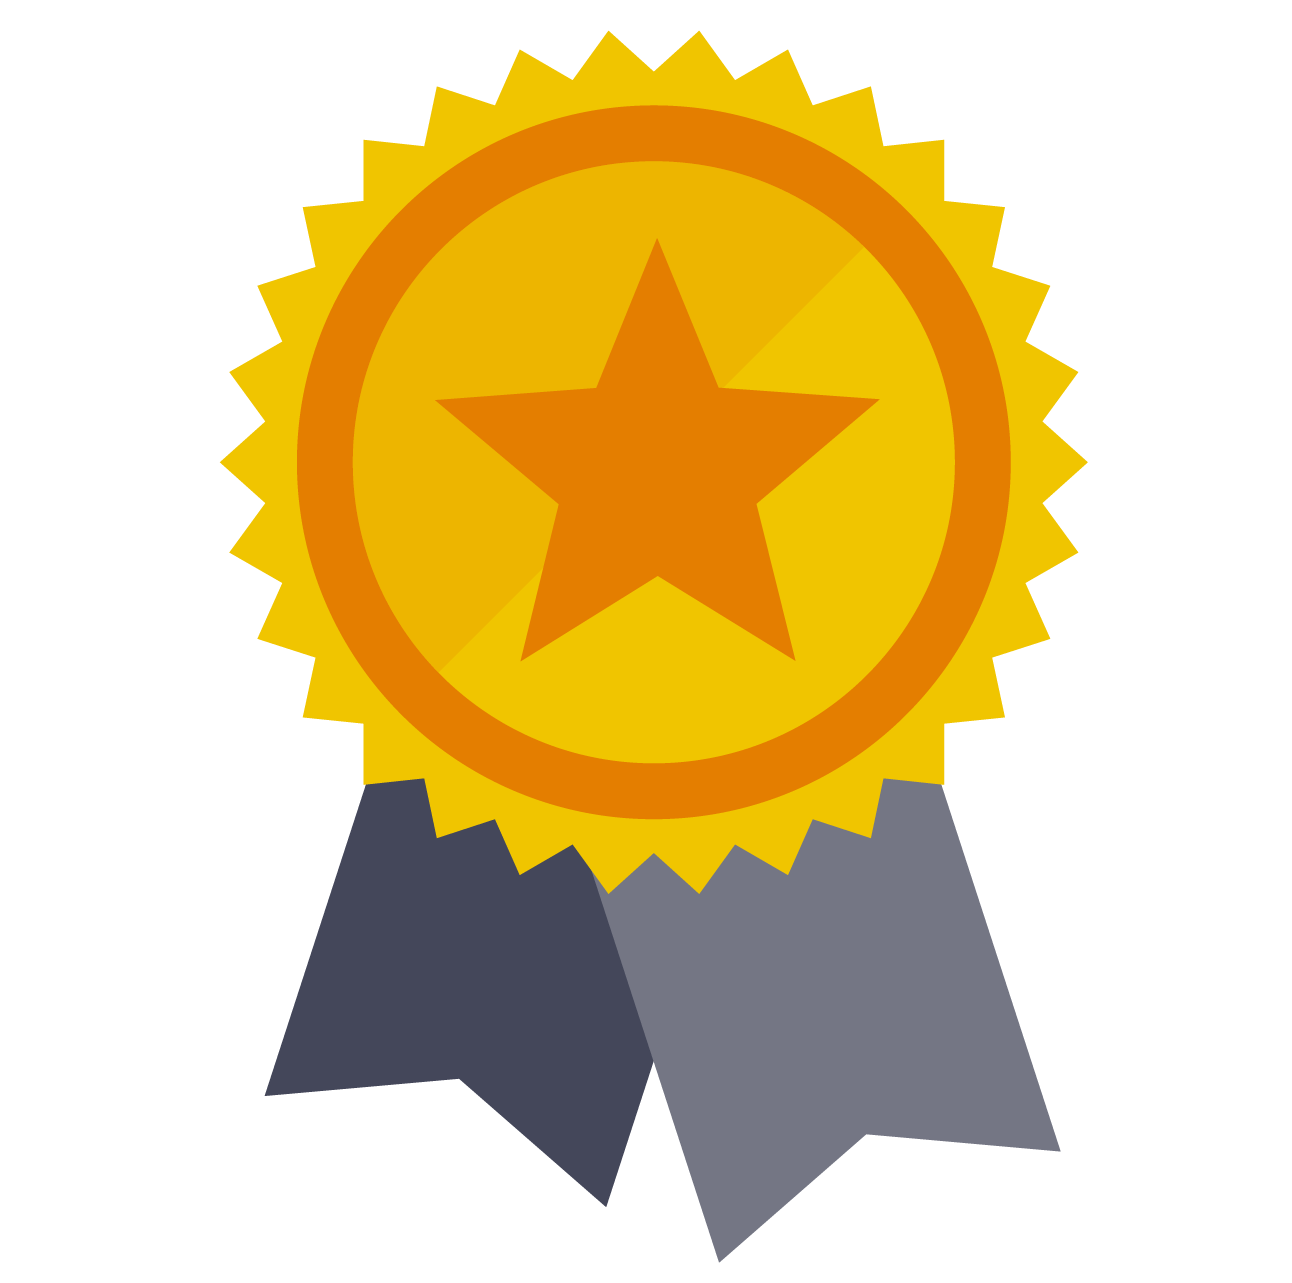 Travel Insurance Star Ratings and Award